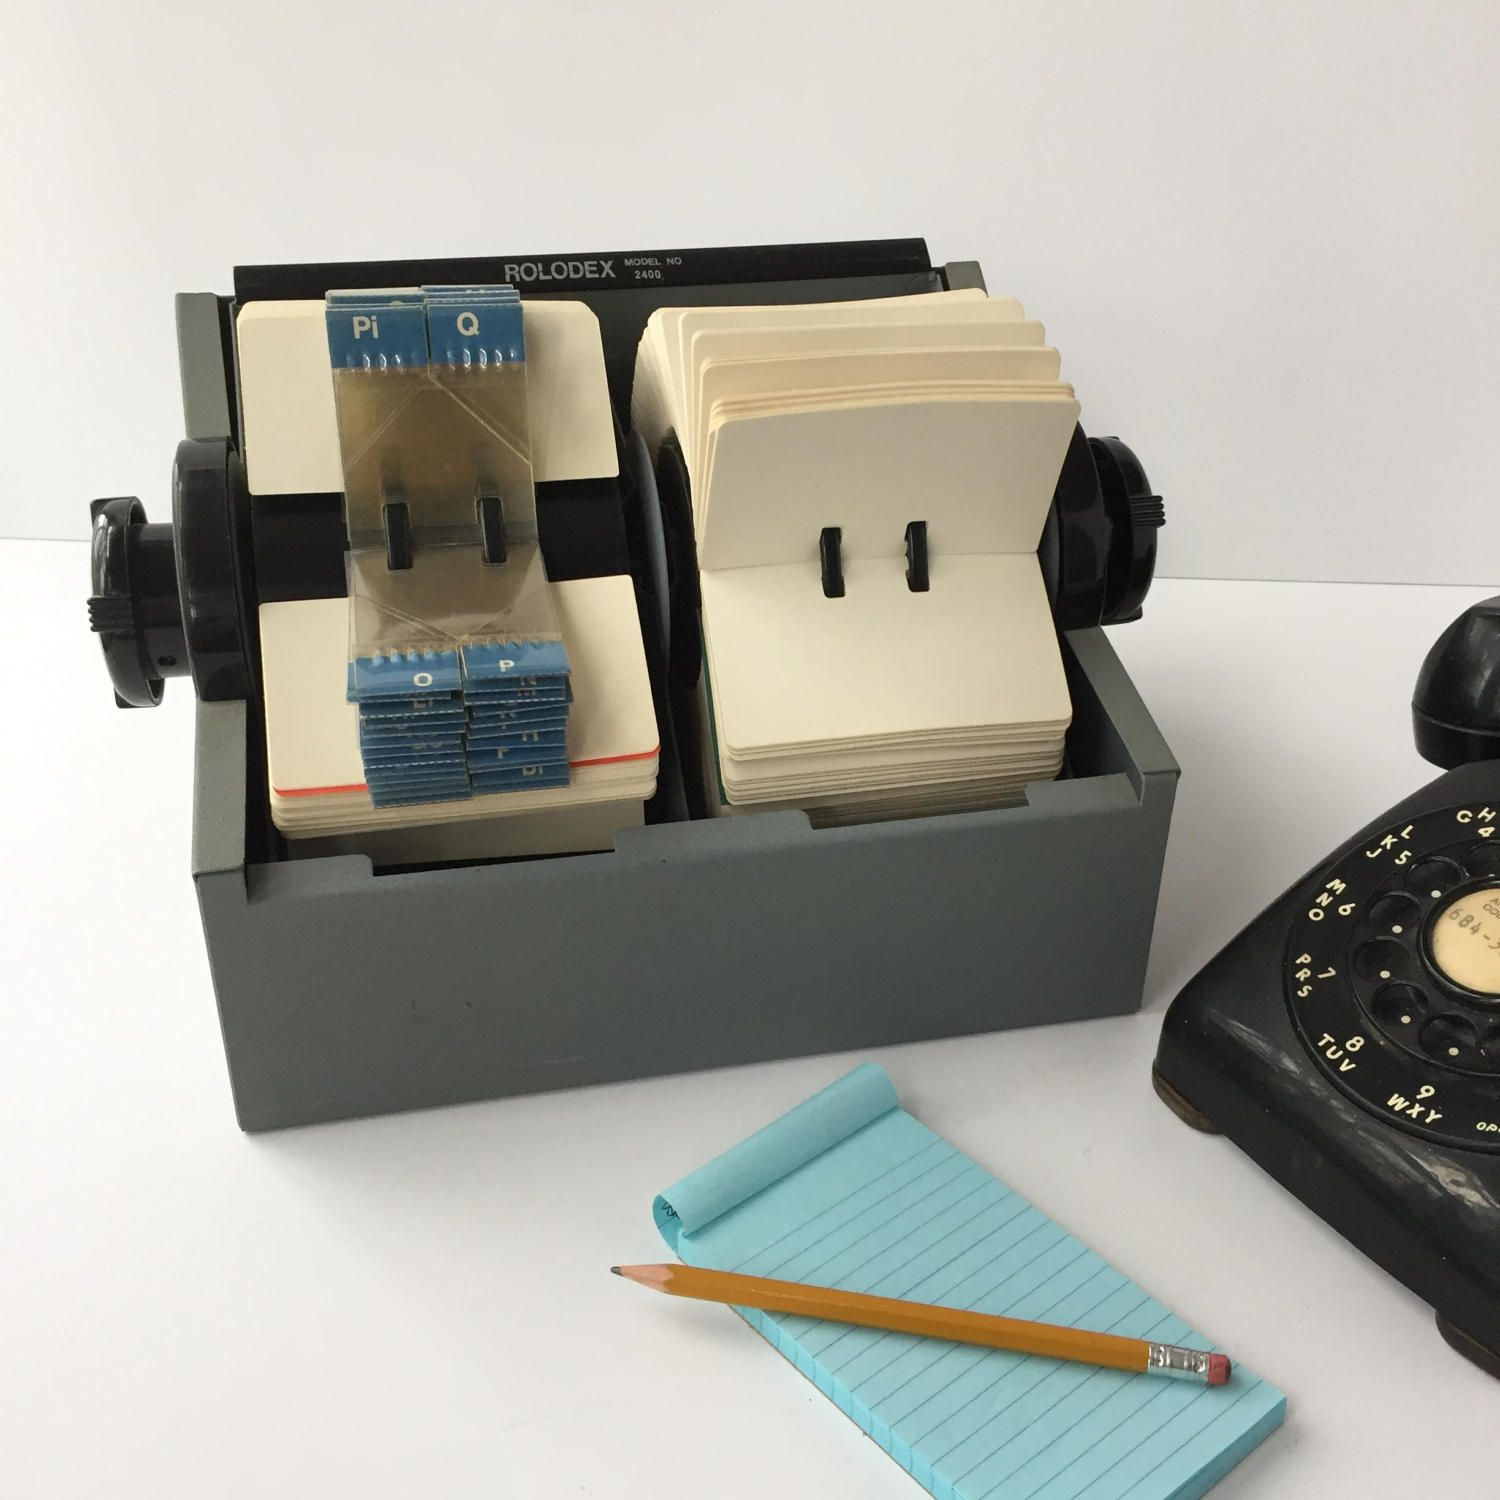 Huge Rolodex 2400 Vintage Double Rolodex Card File Rotary Card Filing System Blank Cards Alpha Dividers Business Contact File Rolodex Card Files Filing System